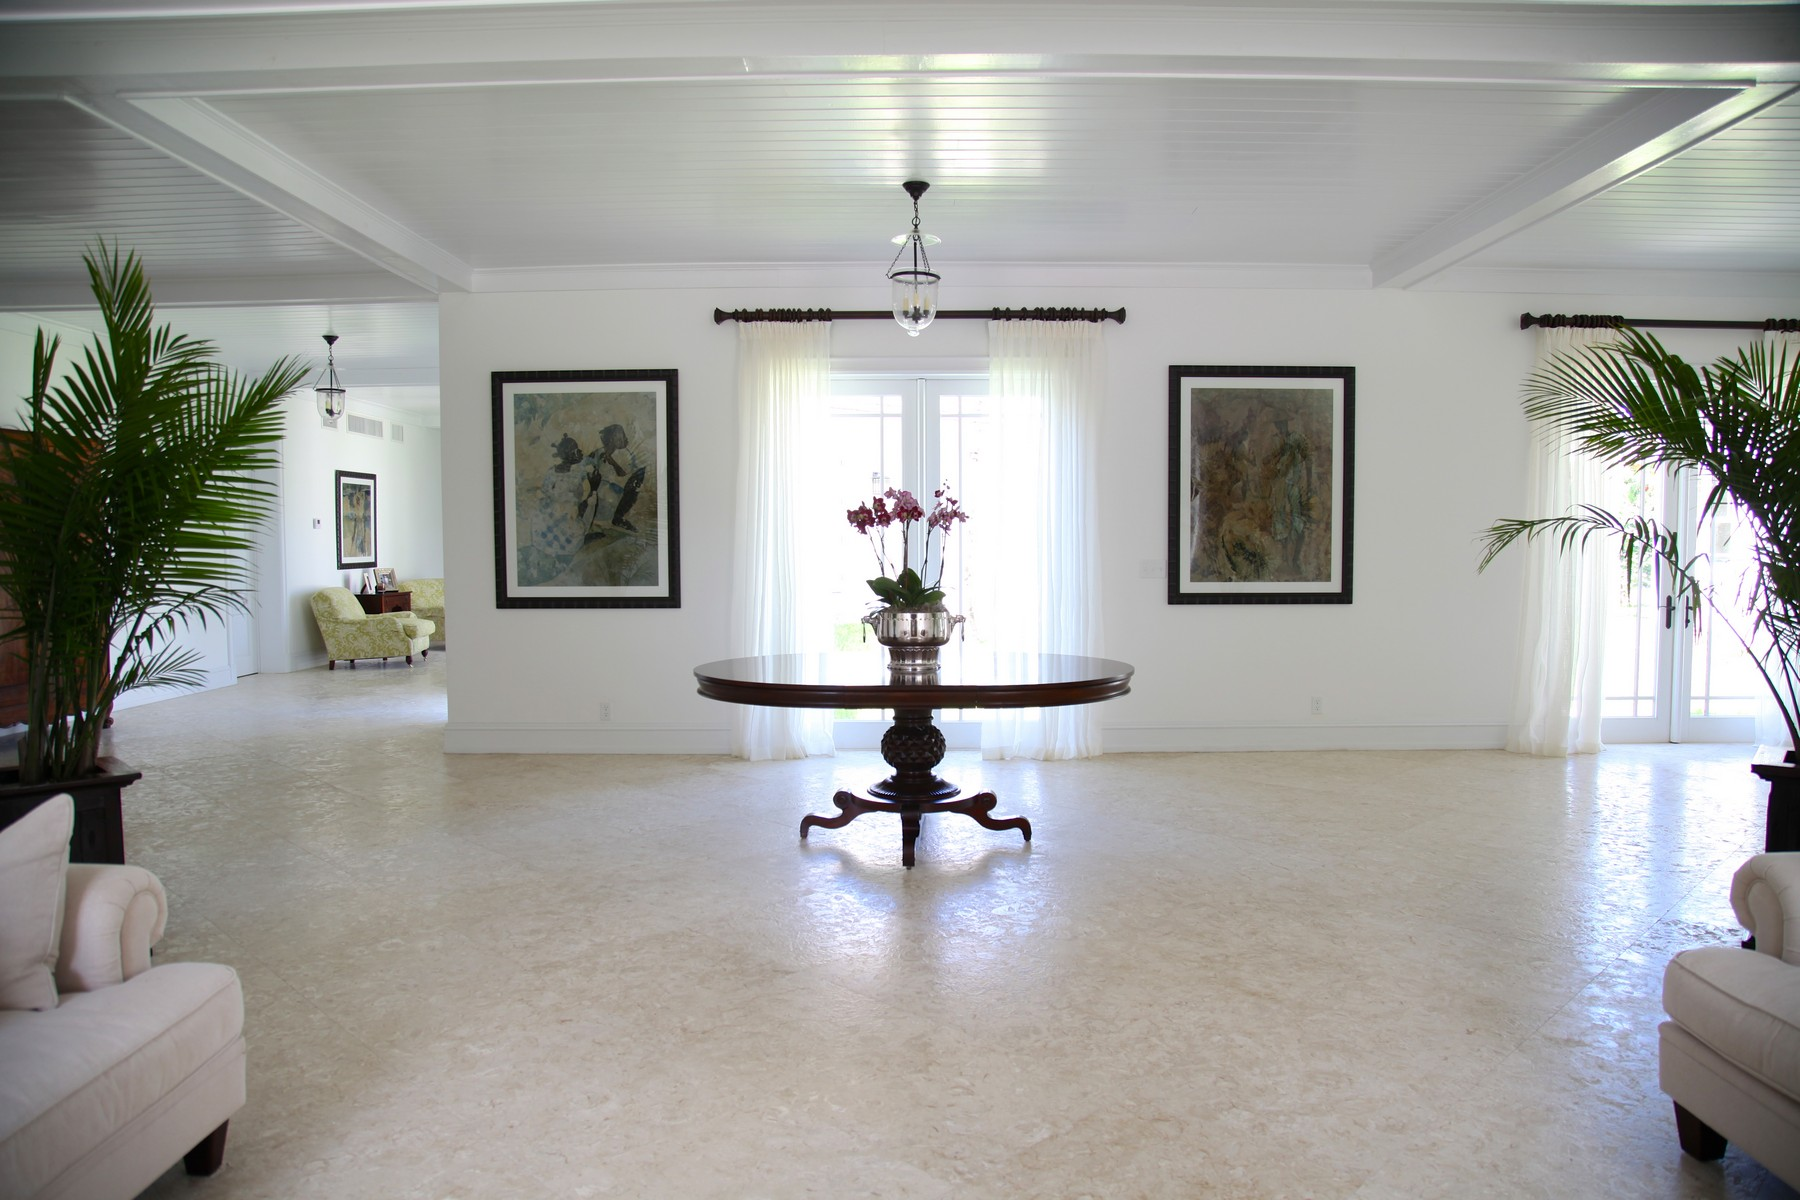 Additional photo for property listing at Orchid House 来佛礁, 新普罗维登斯/拿骚 巴哈马